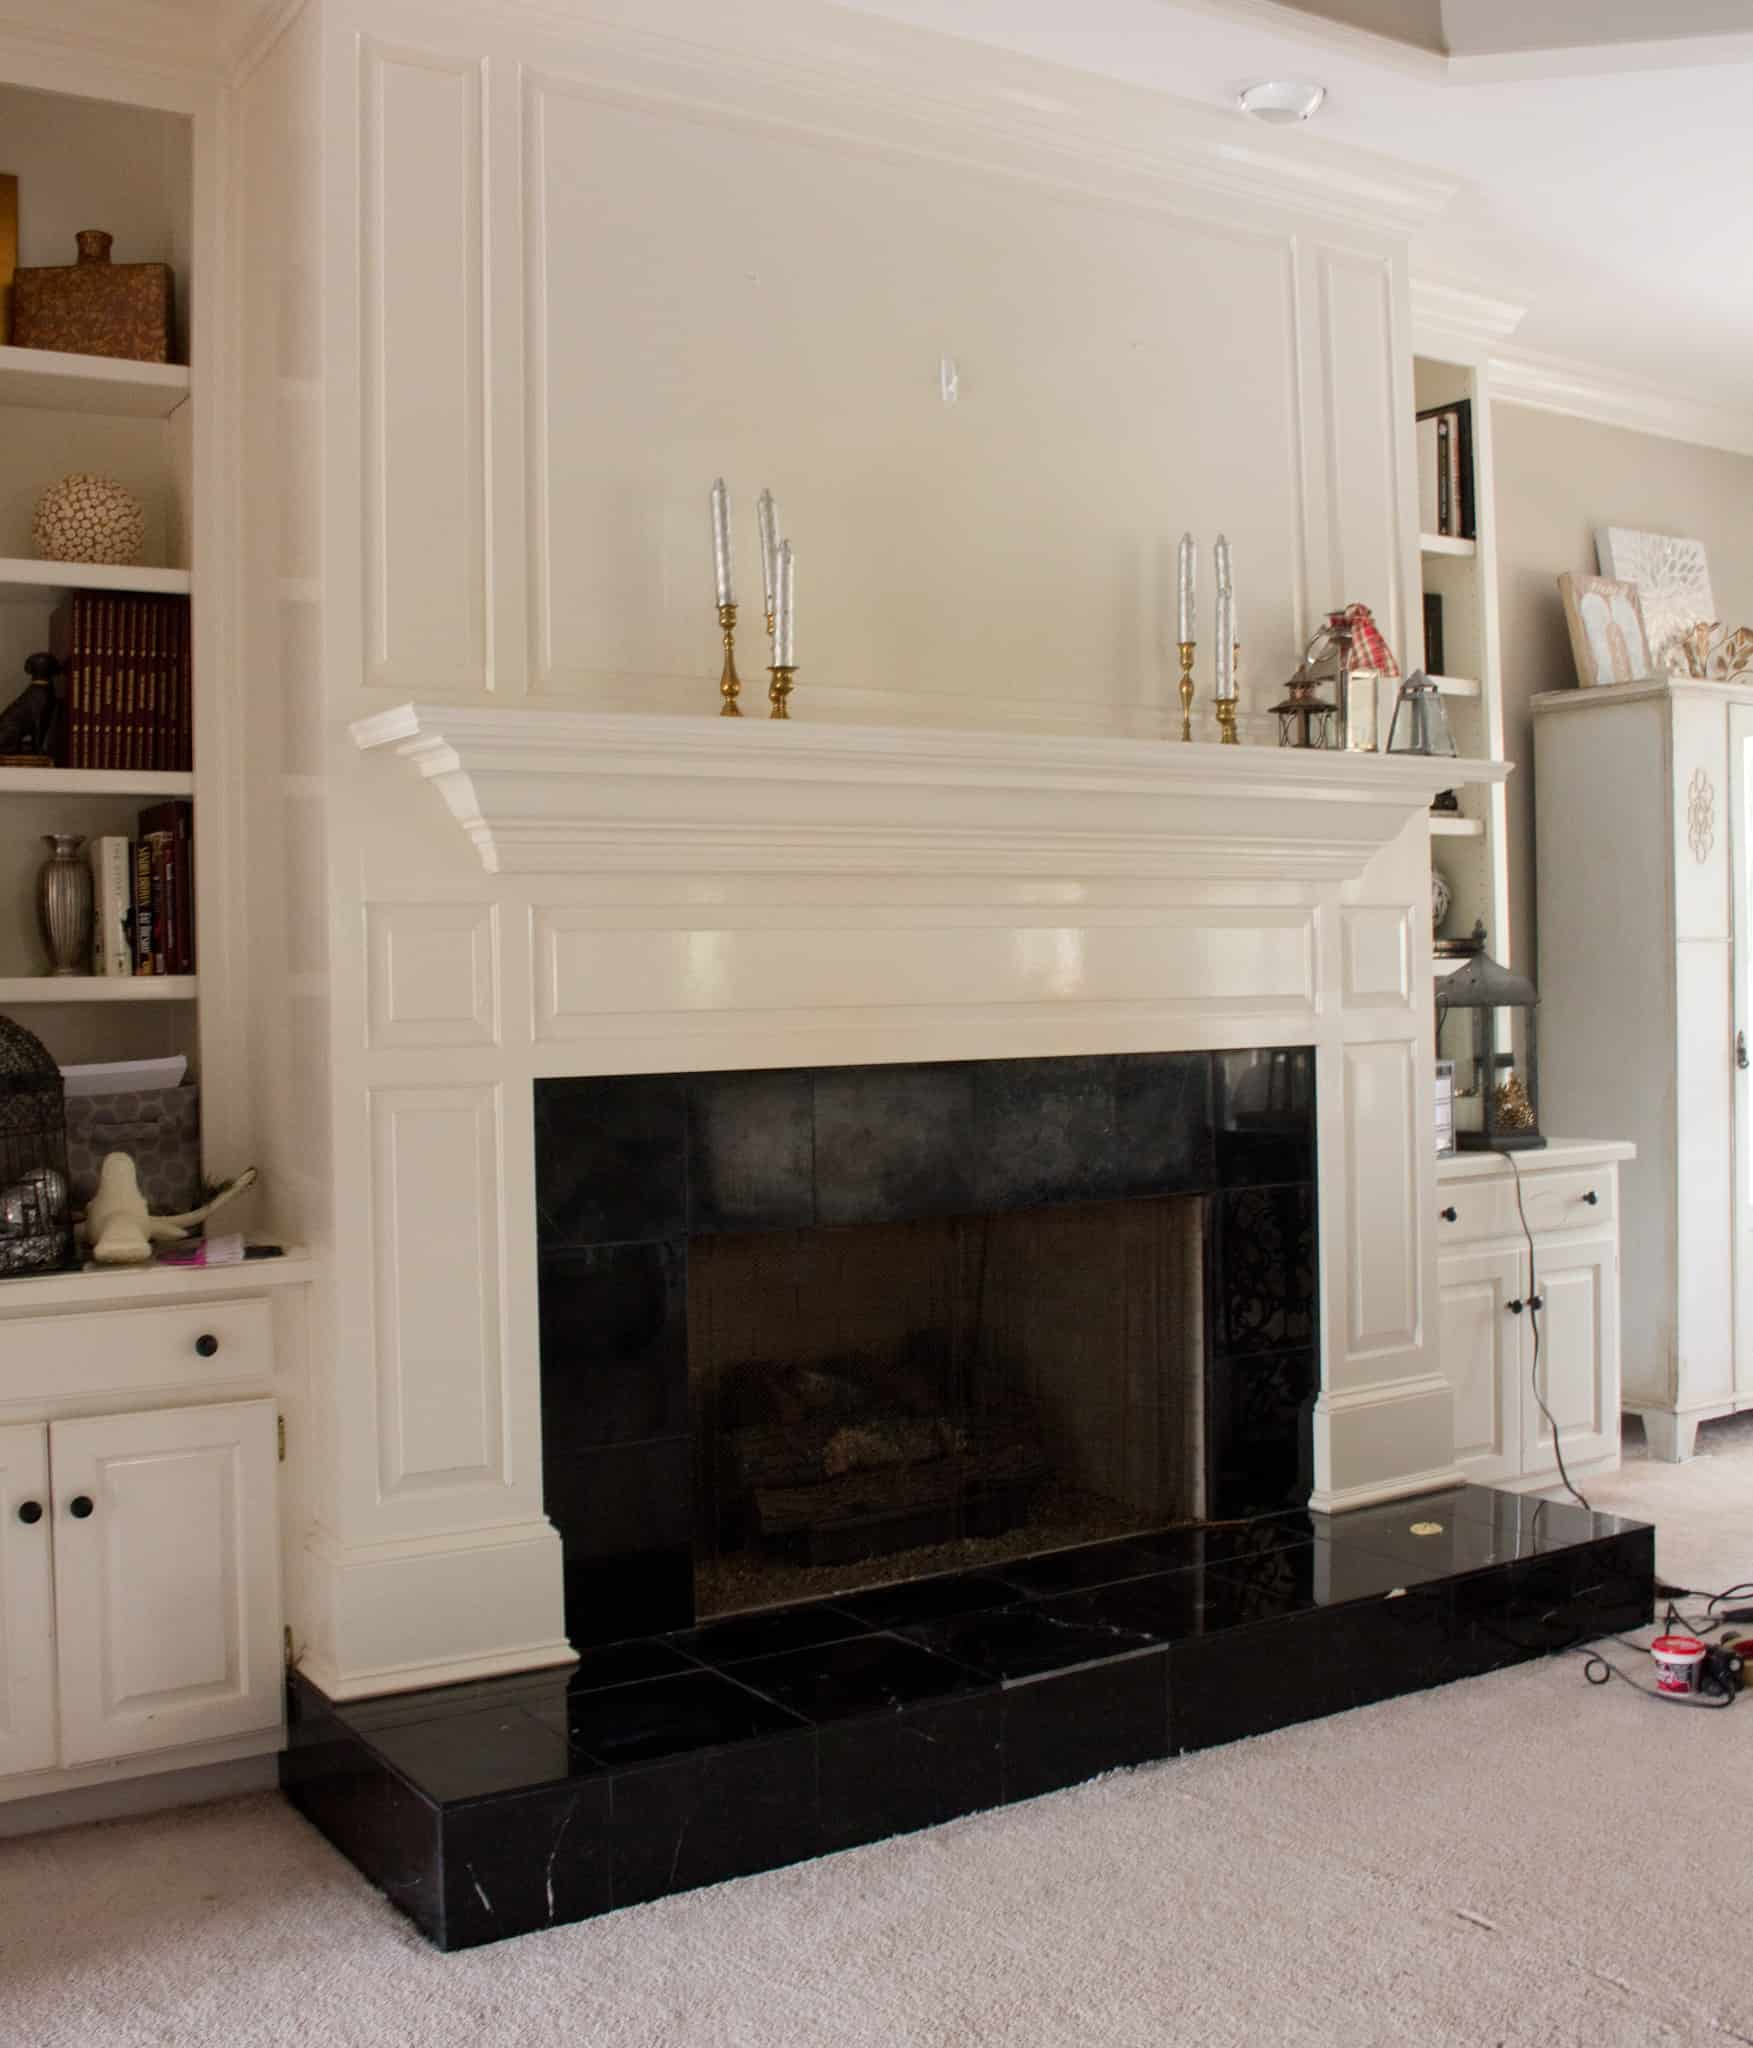 Faux marble fireplace savvy apron i painted our damaged black tiles on our fireplace to look like marble it solutioingenieria Choice Image